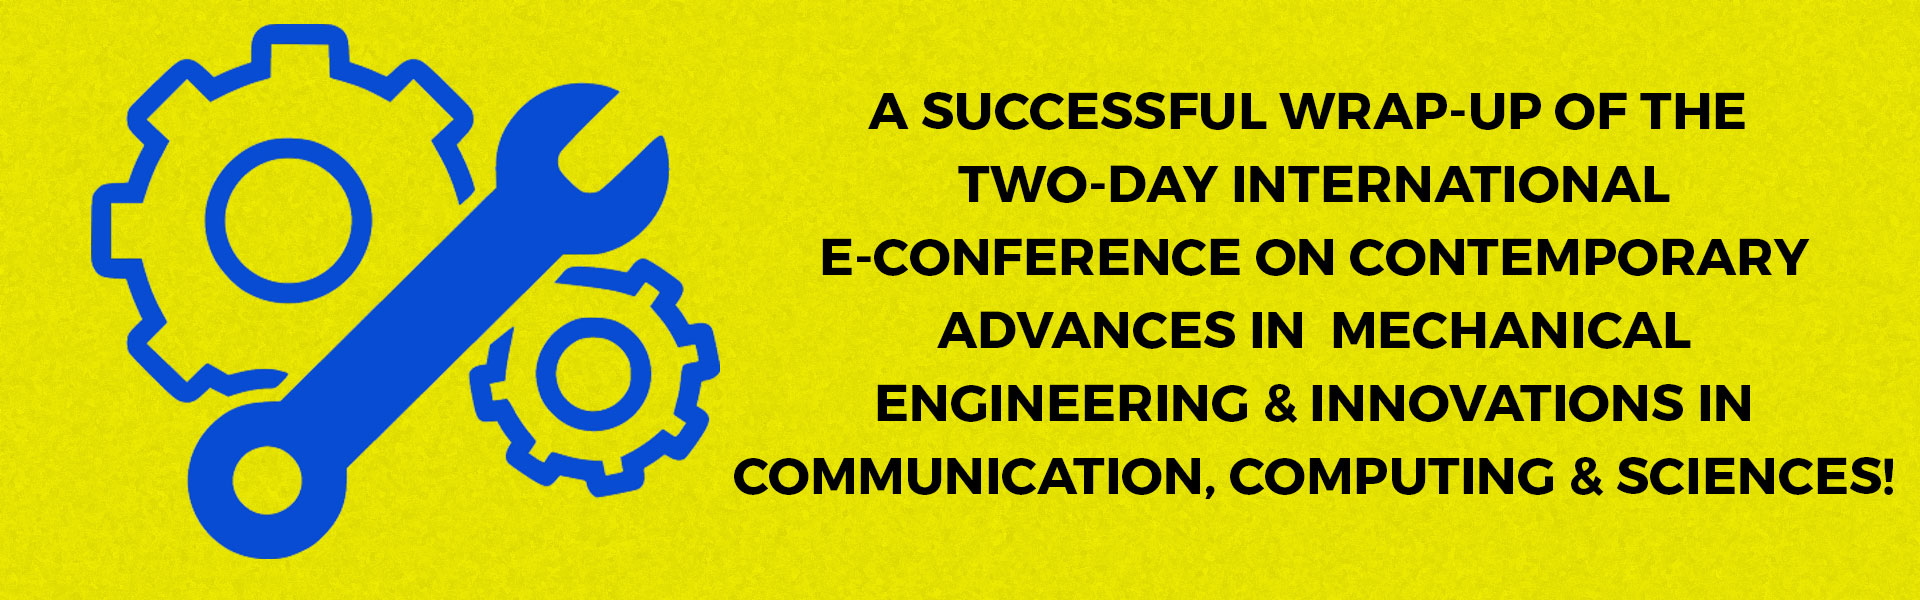 A successful wrap-up of the two-day International E-Conference on Contemporary Advances in Mechanical Engineering & Innovations in Communication, Computing & Sciences!